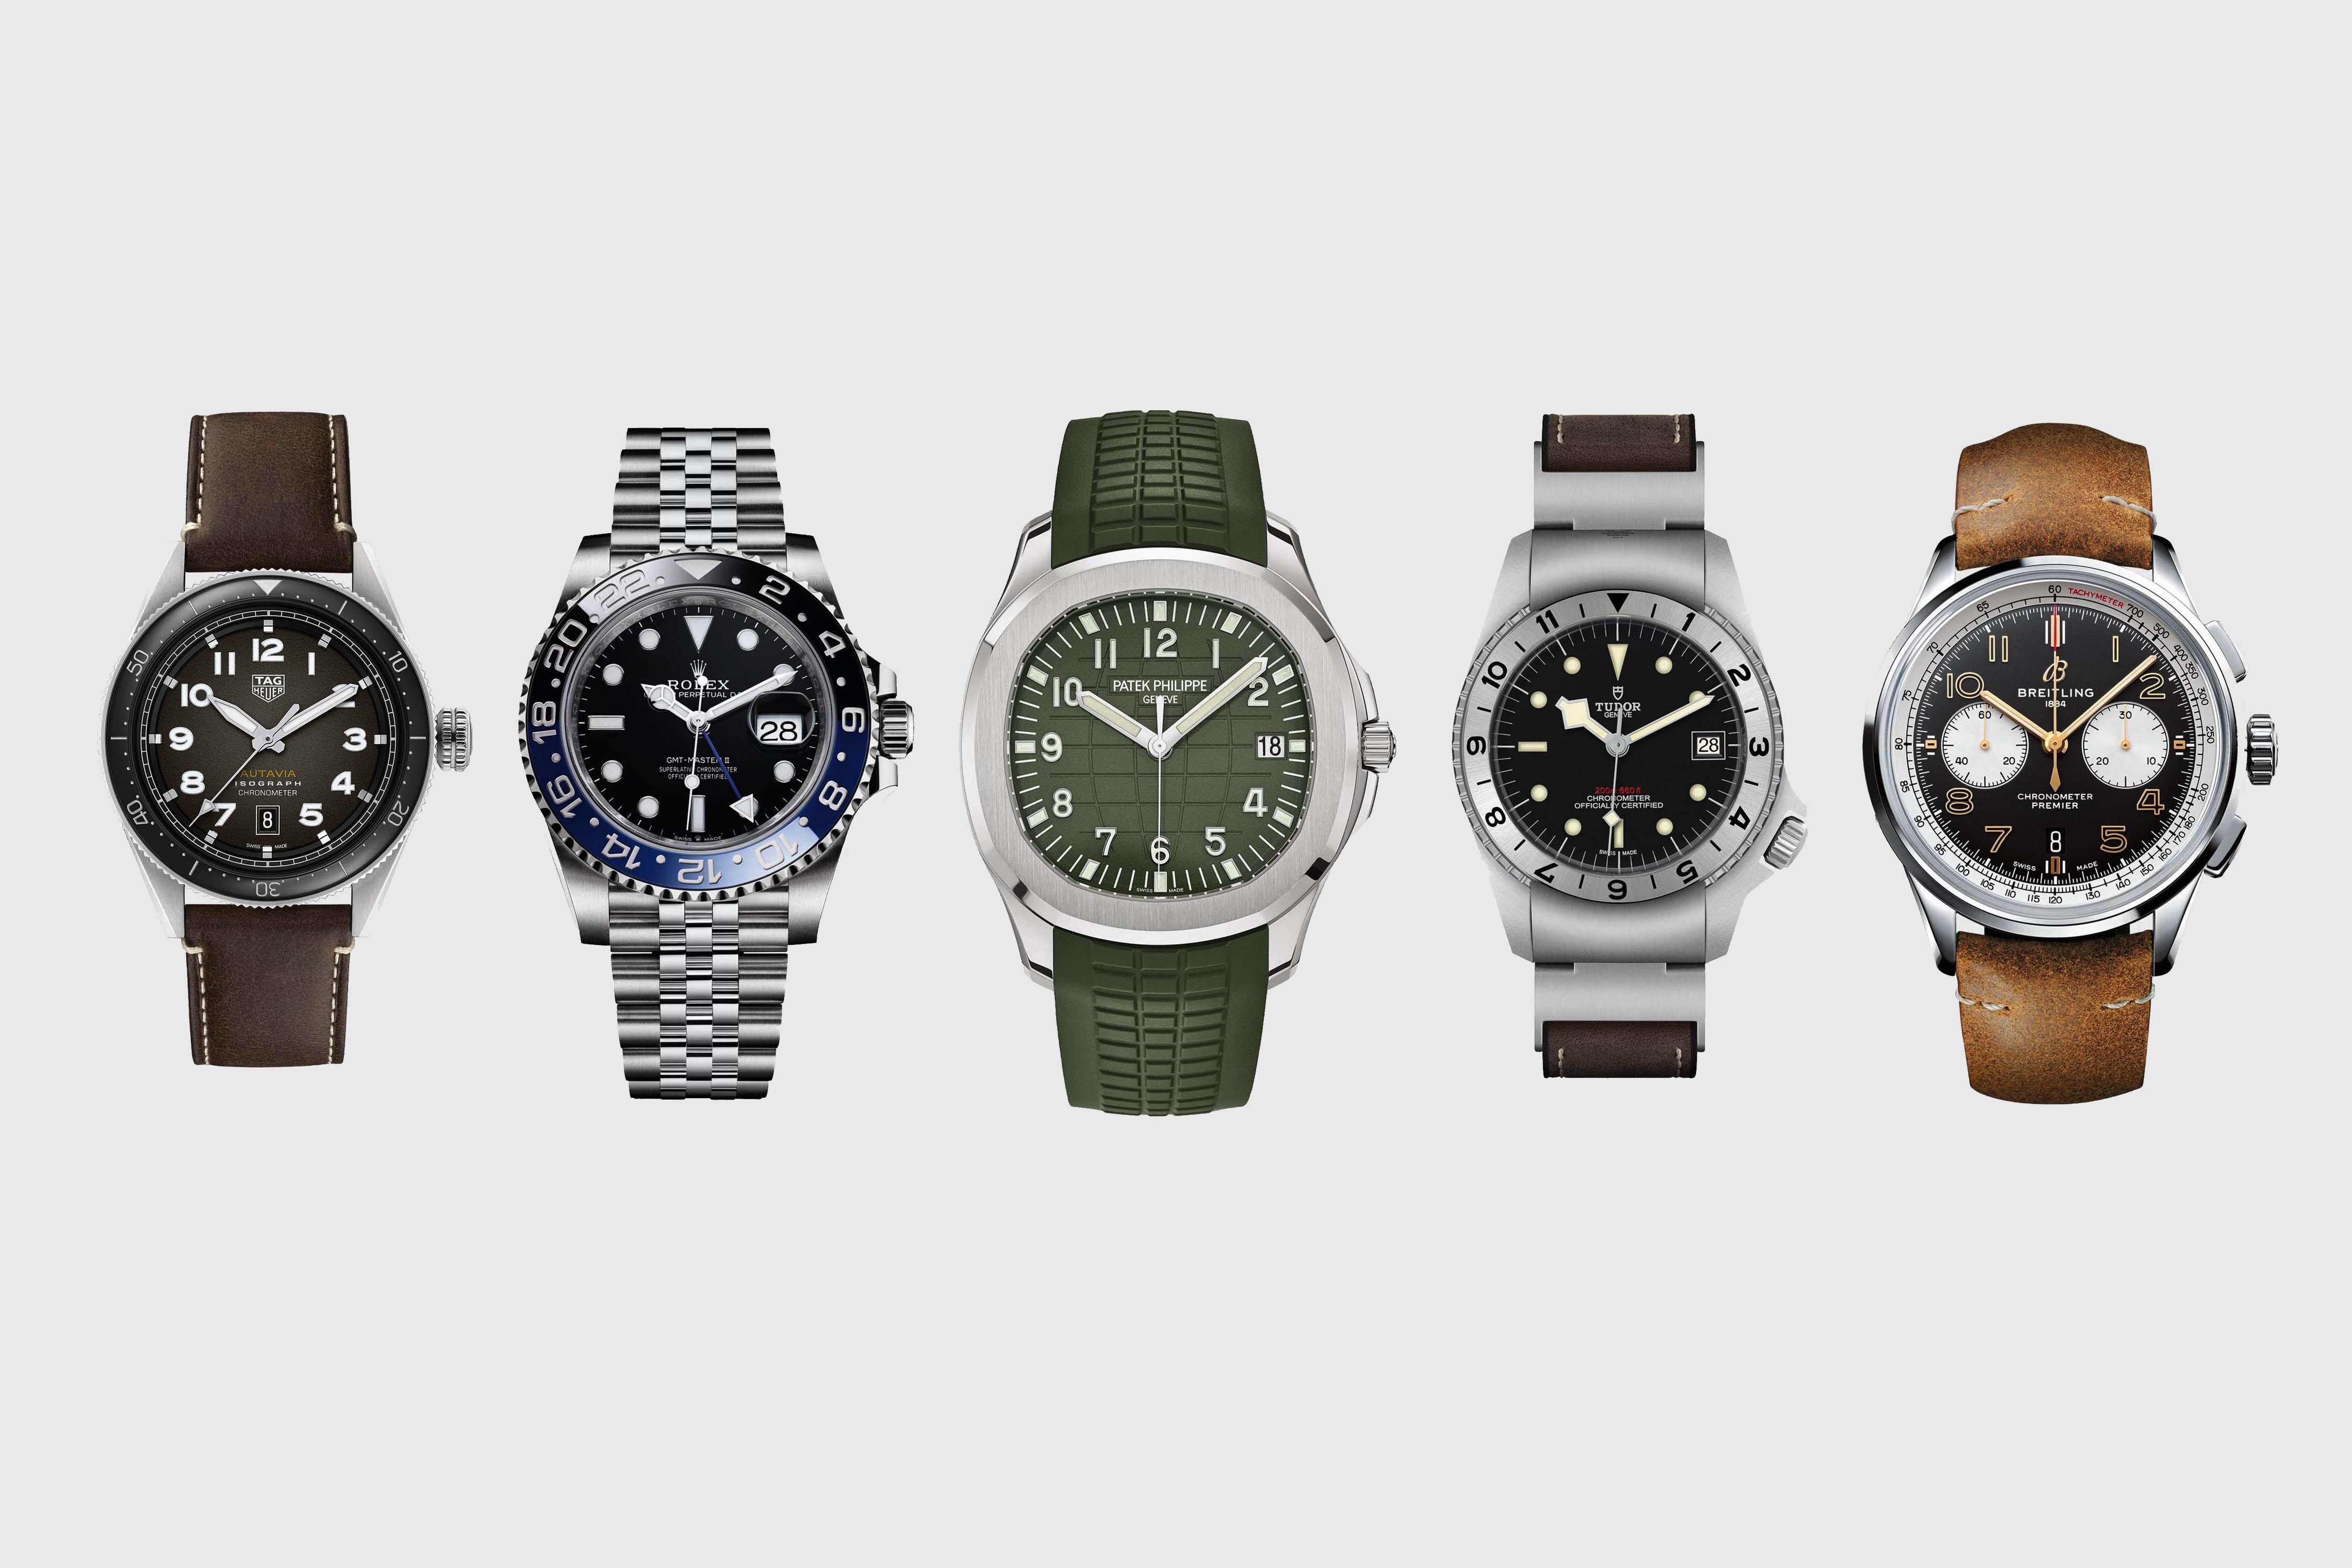 5 new watches for travellers to buy this summer